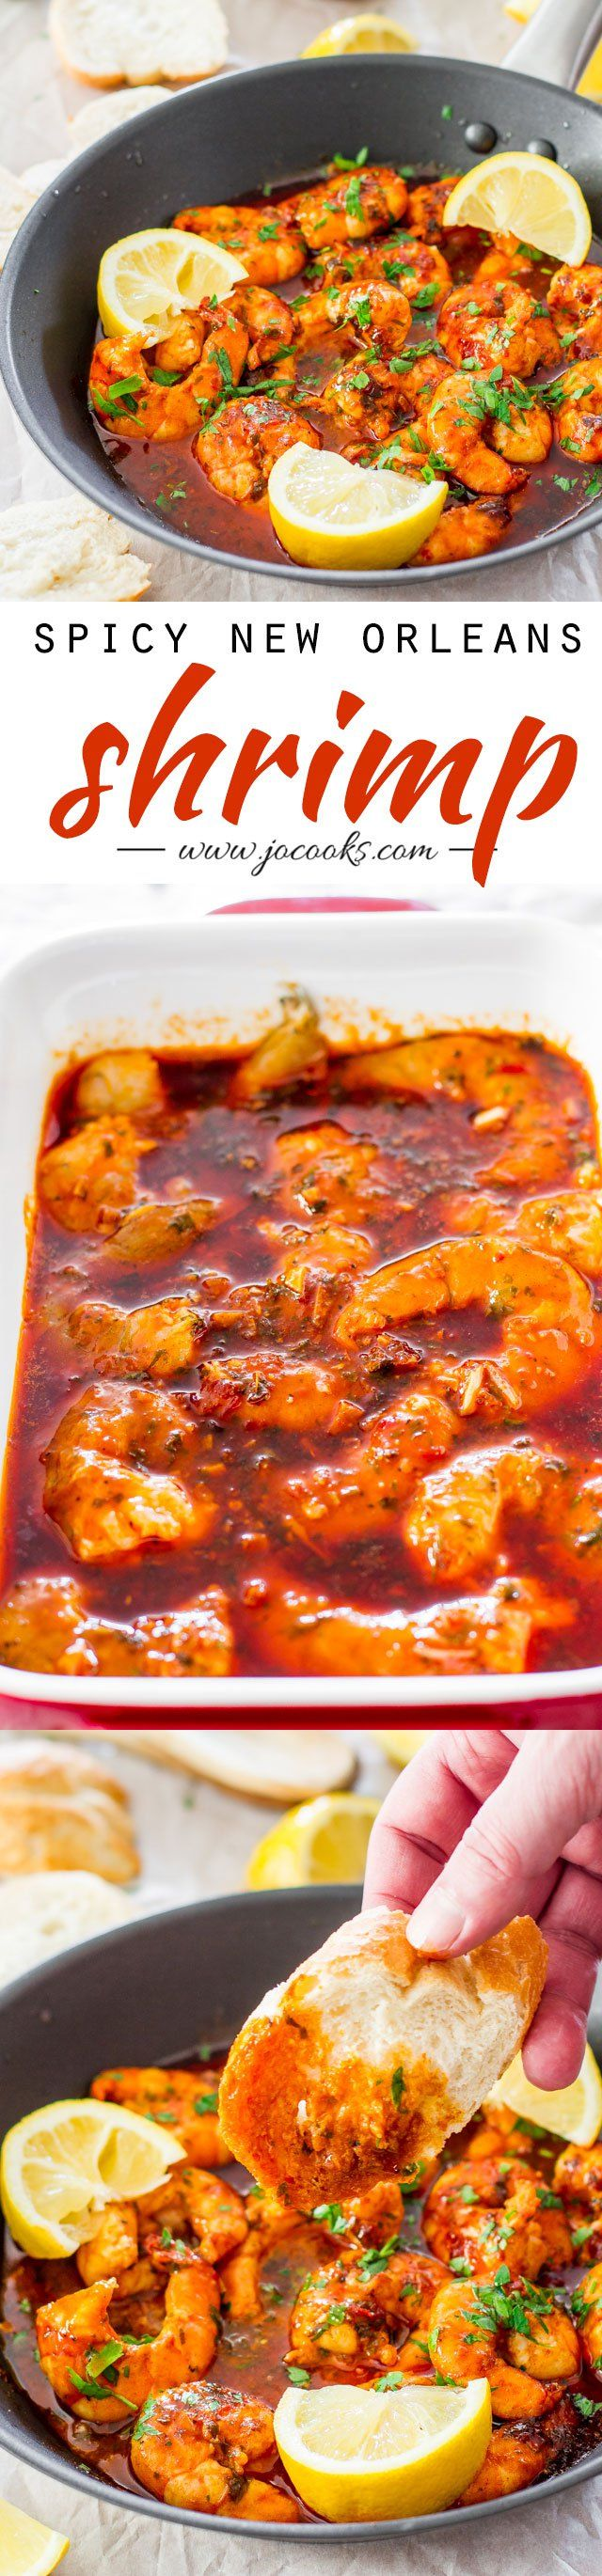 Spicy New Orleans Shrimp                                                                                                                                                                                 More